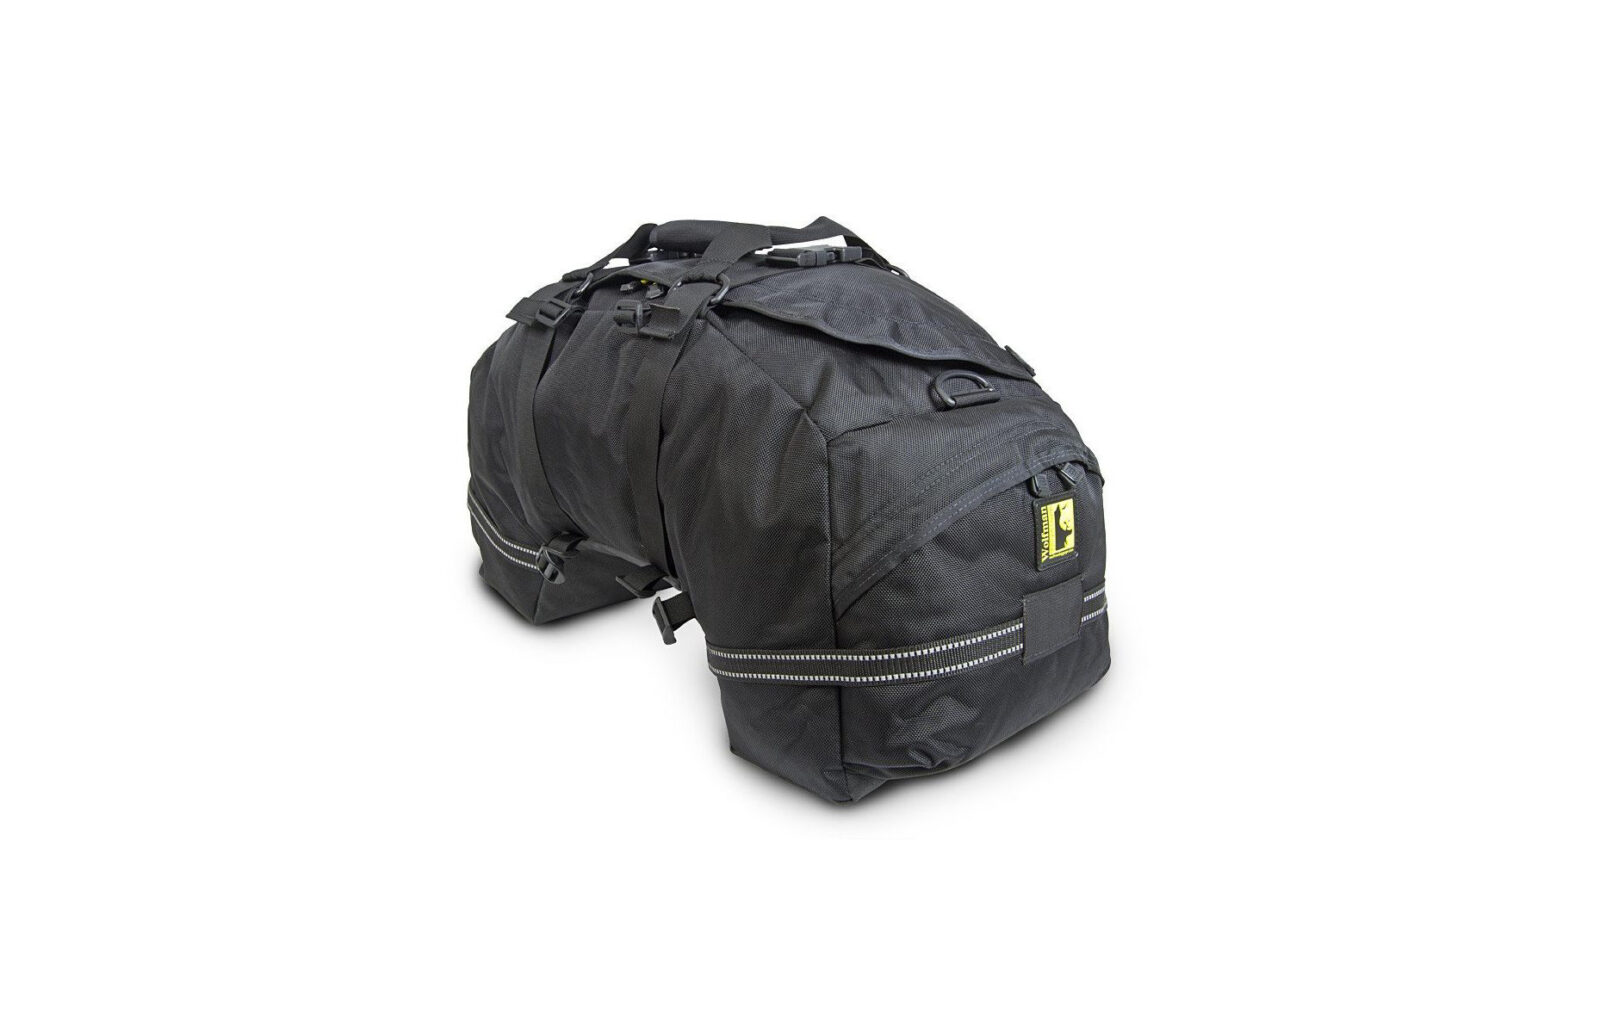 Wolfman Beta Plus Rear Bag 1600x1033 - Wolfman Beta Plus Motorcycle Rear Bag